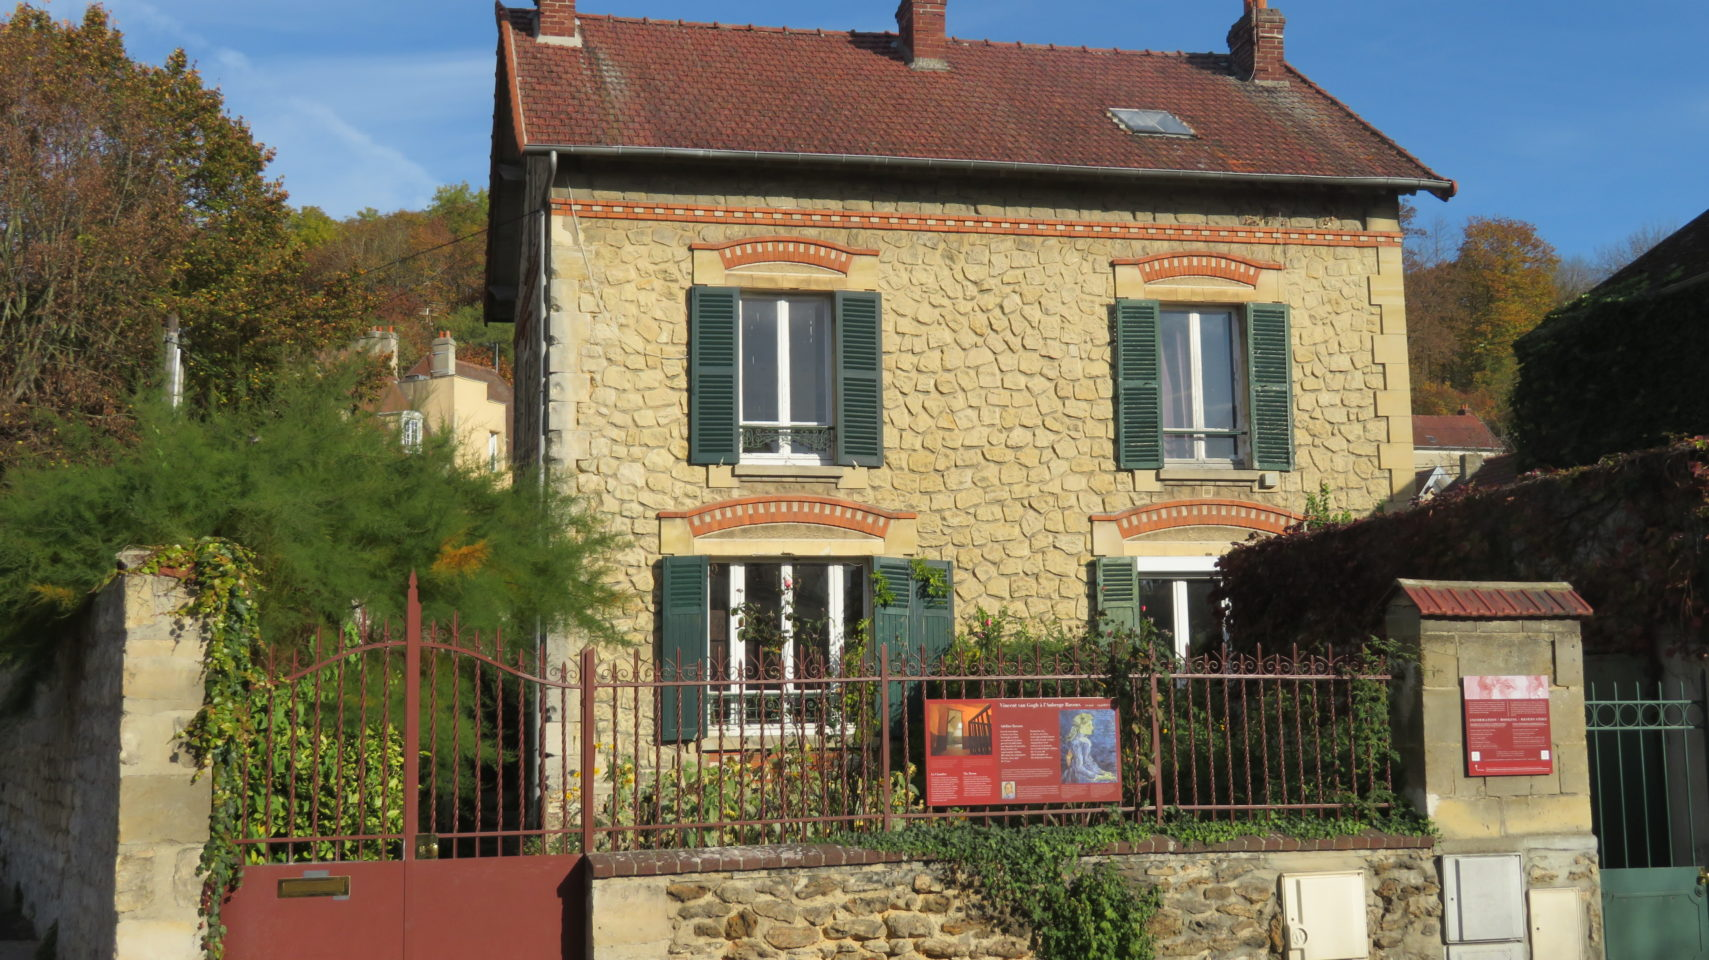 Vincent Van Gogh lived at Auberge Ravoux in Auvers-sur-Oise, France (Paris and Normandie AMAWaterways Cruise)